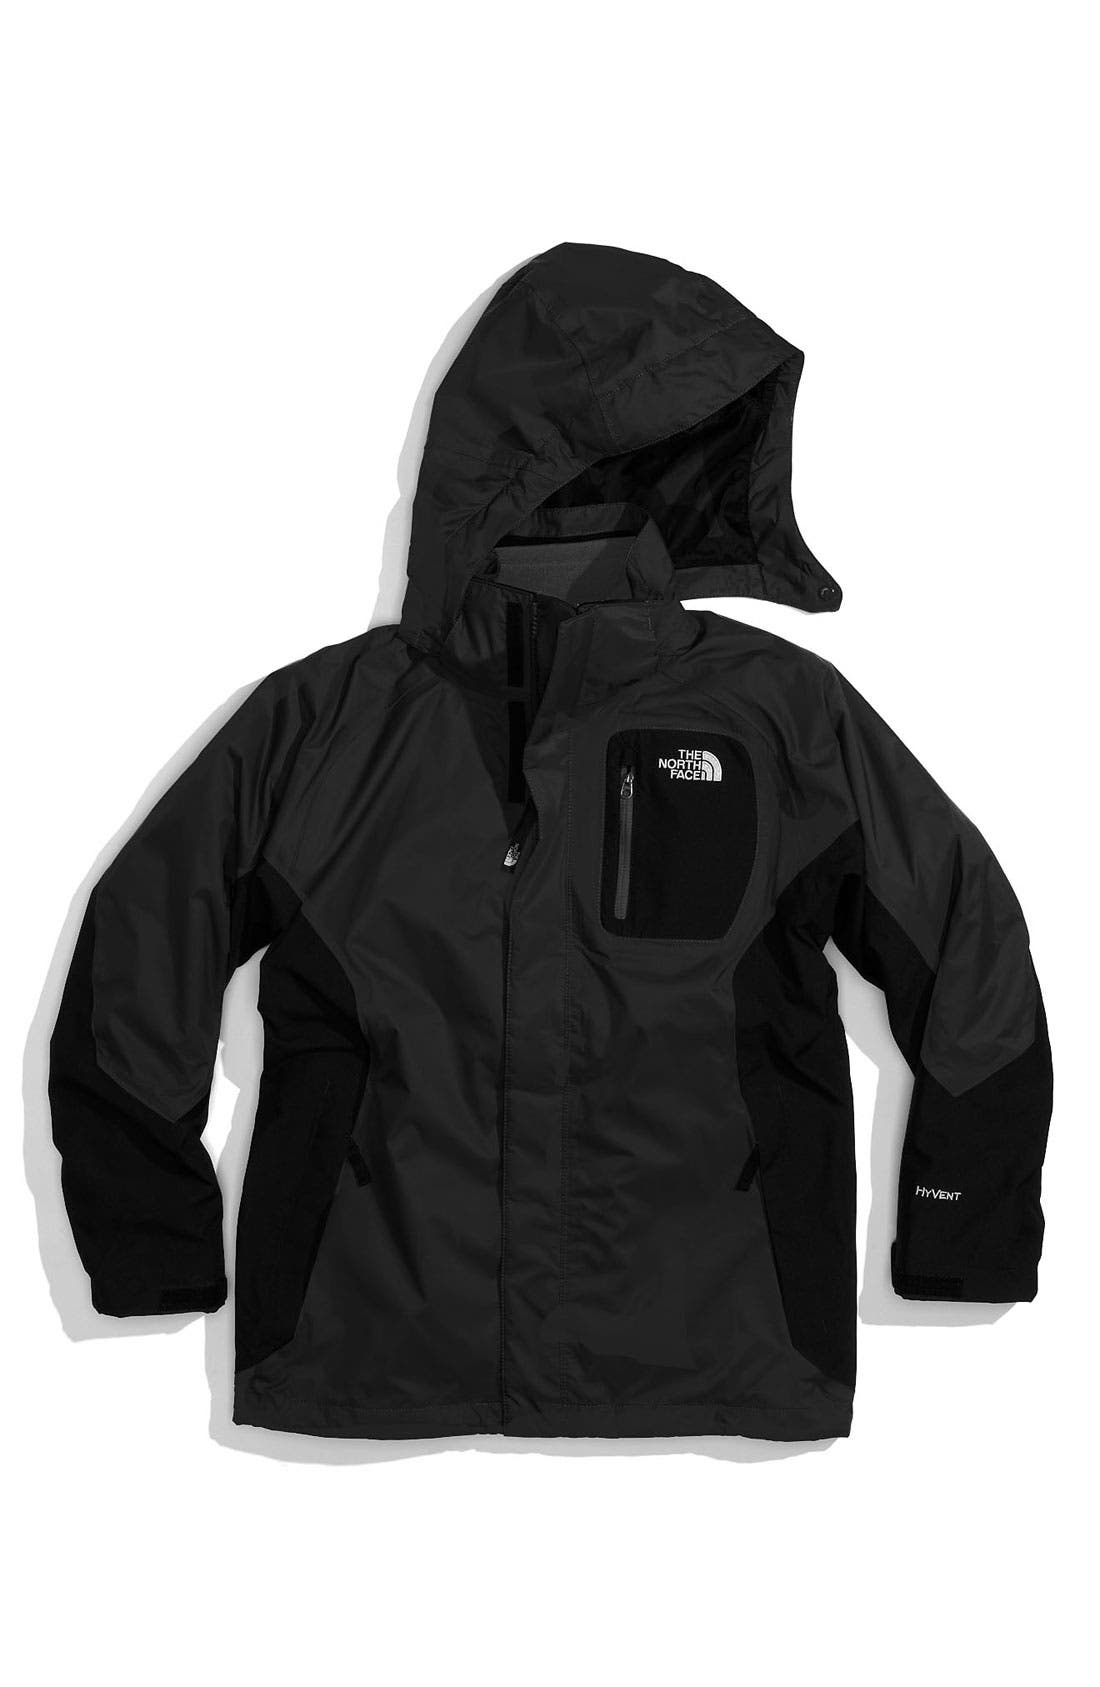 Main Image - The North Face 'Atlas' TriClimate® 3-in-1 Jacket (Big Boys)